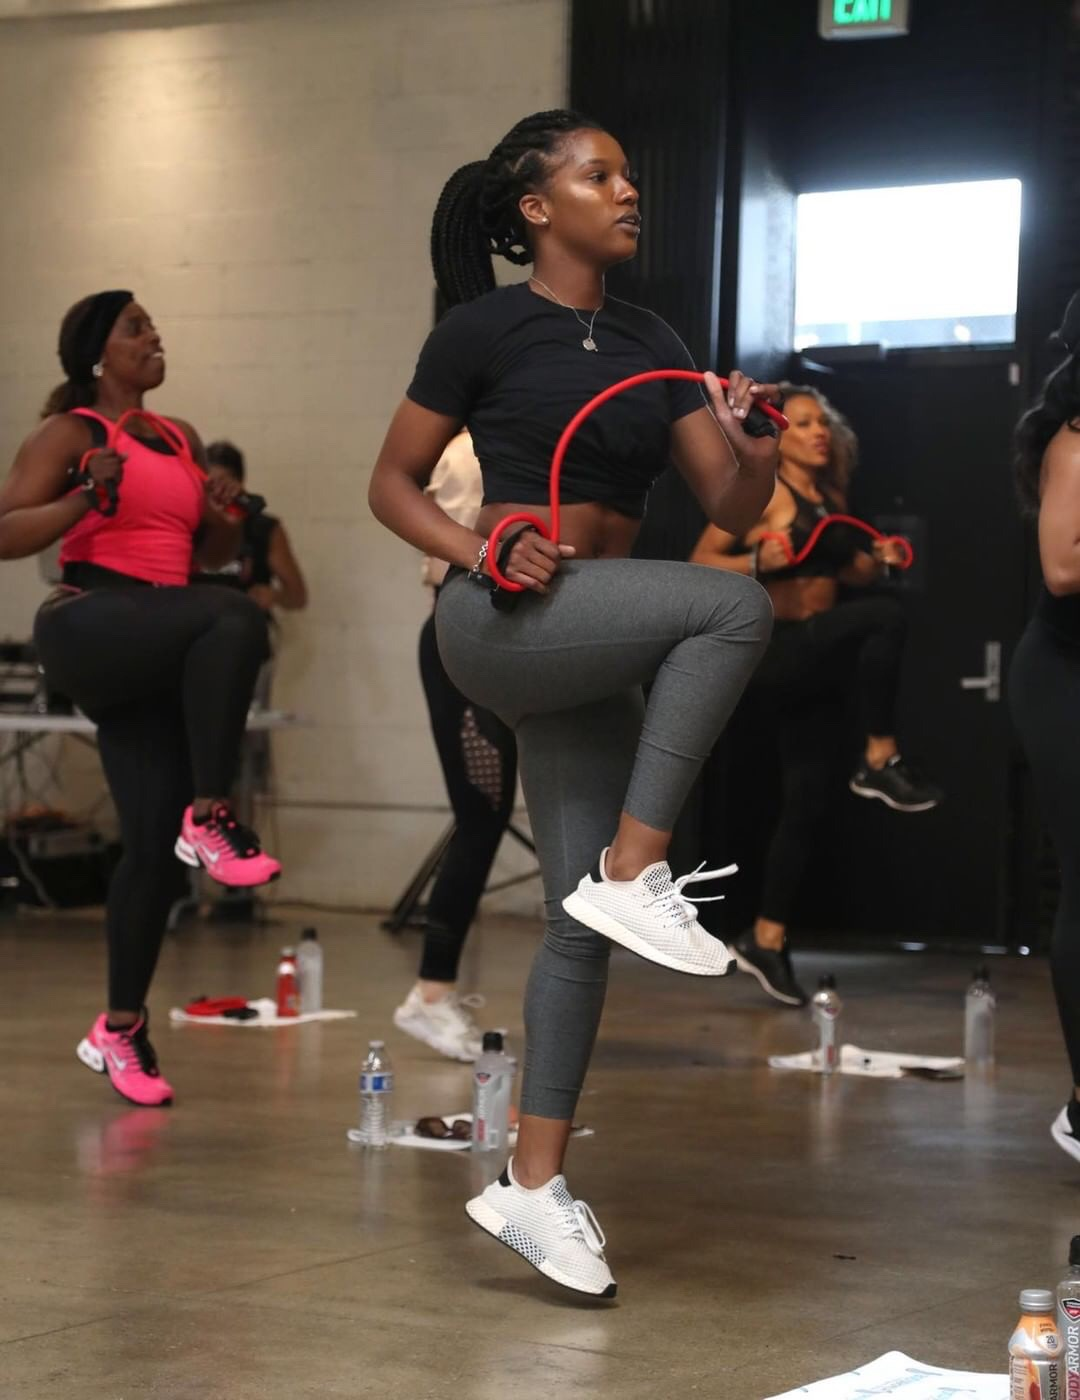 LYTE UP LA Exclusive Workout Hosted by BODYARMOR